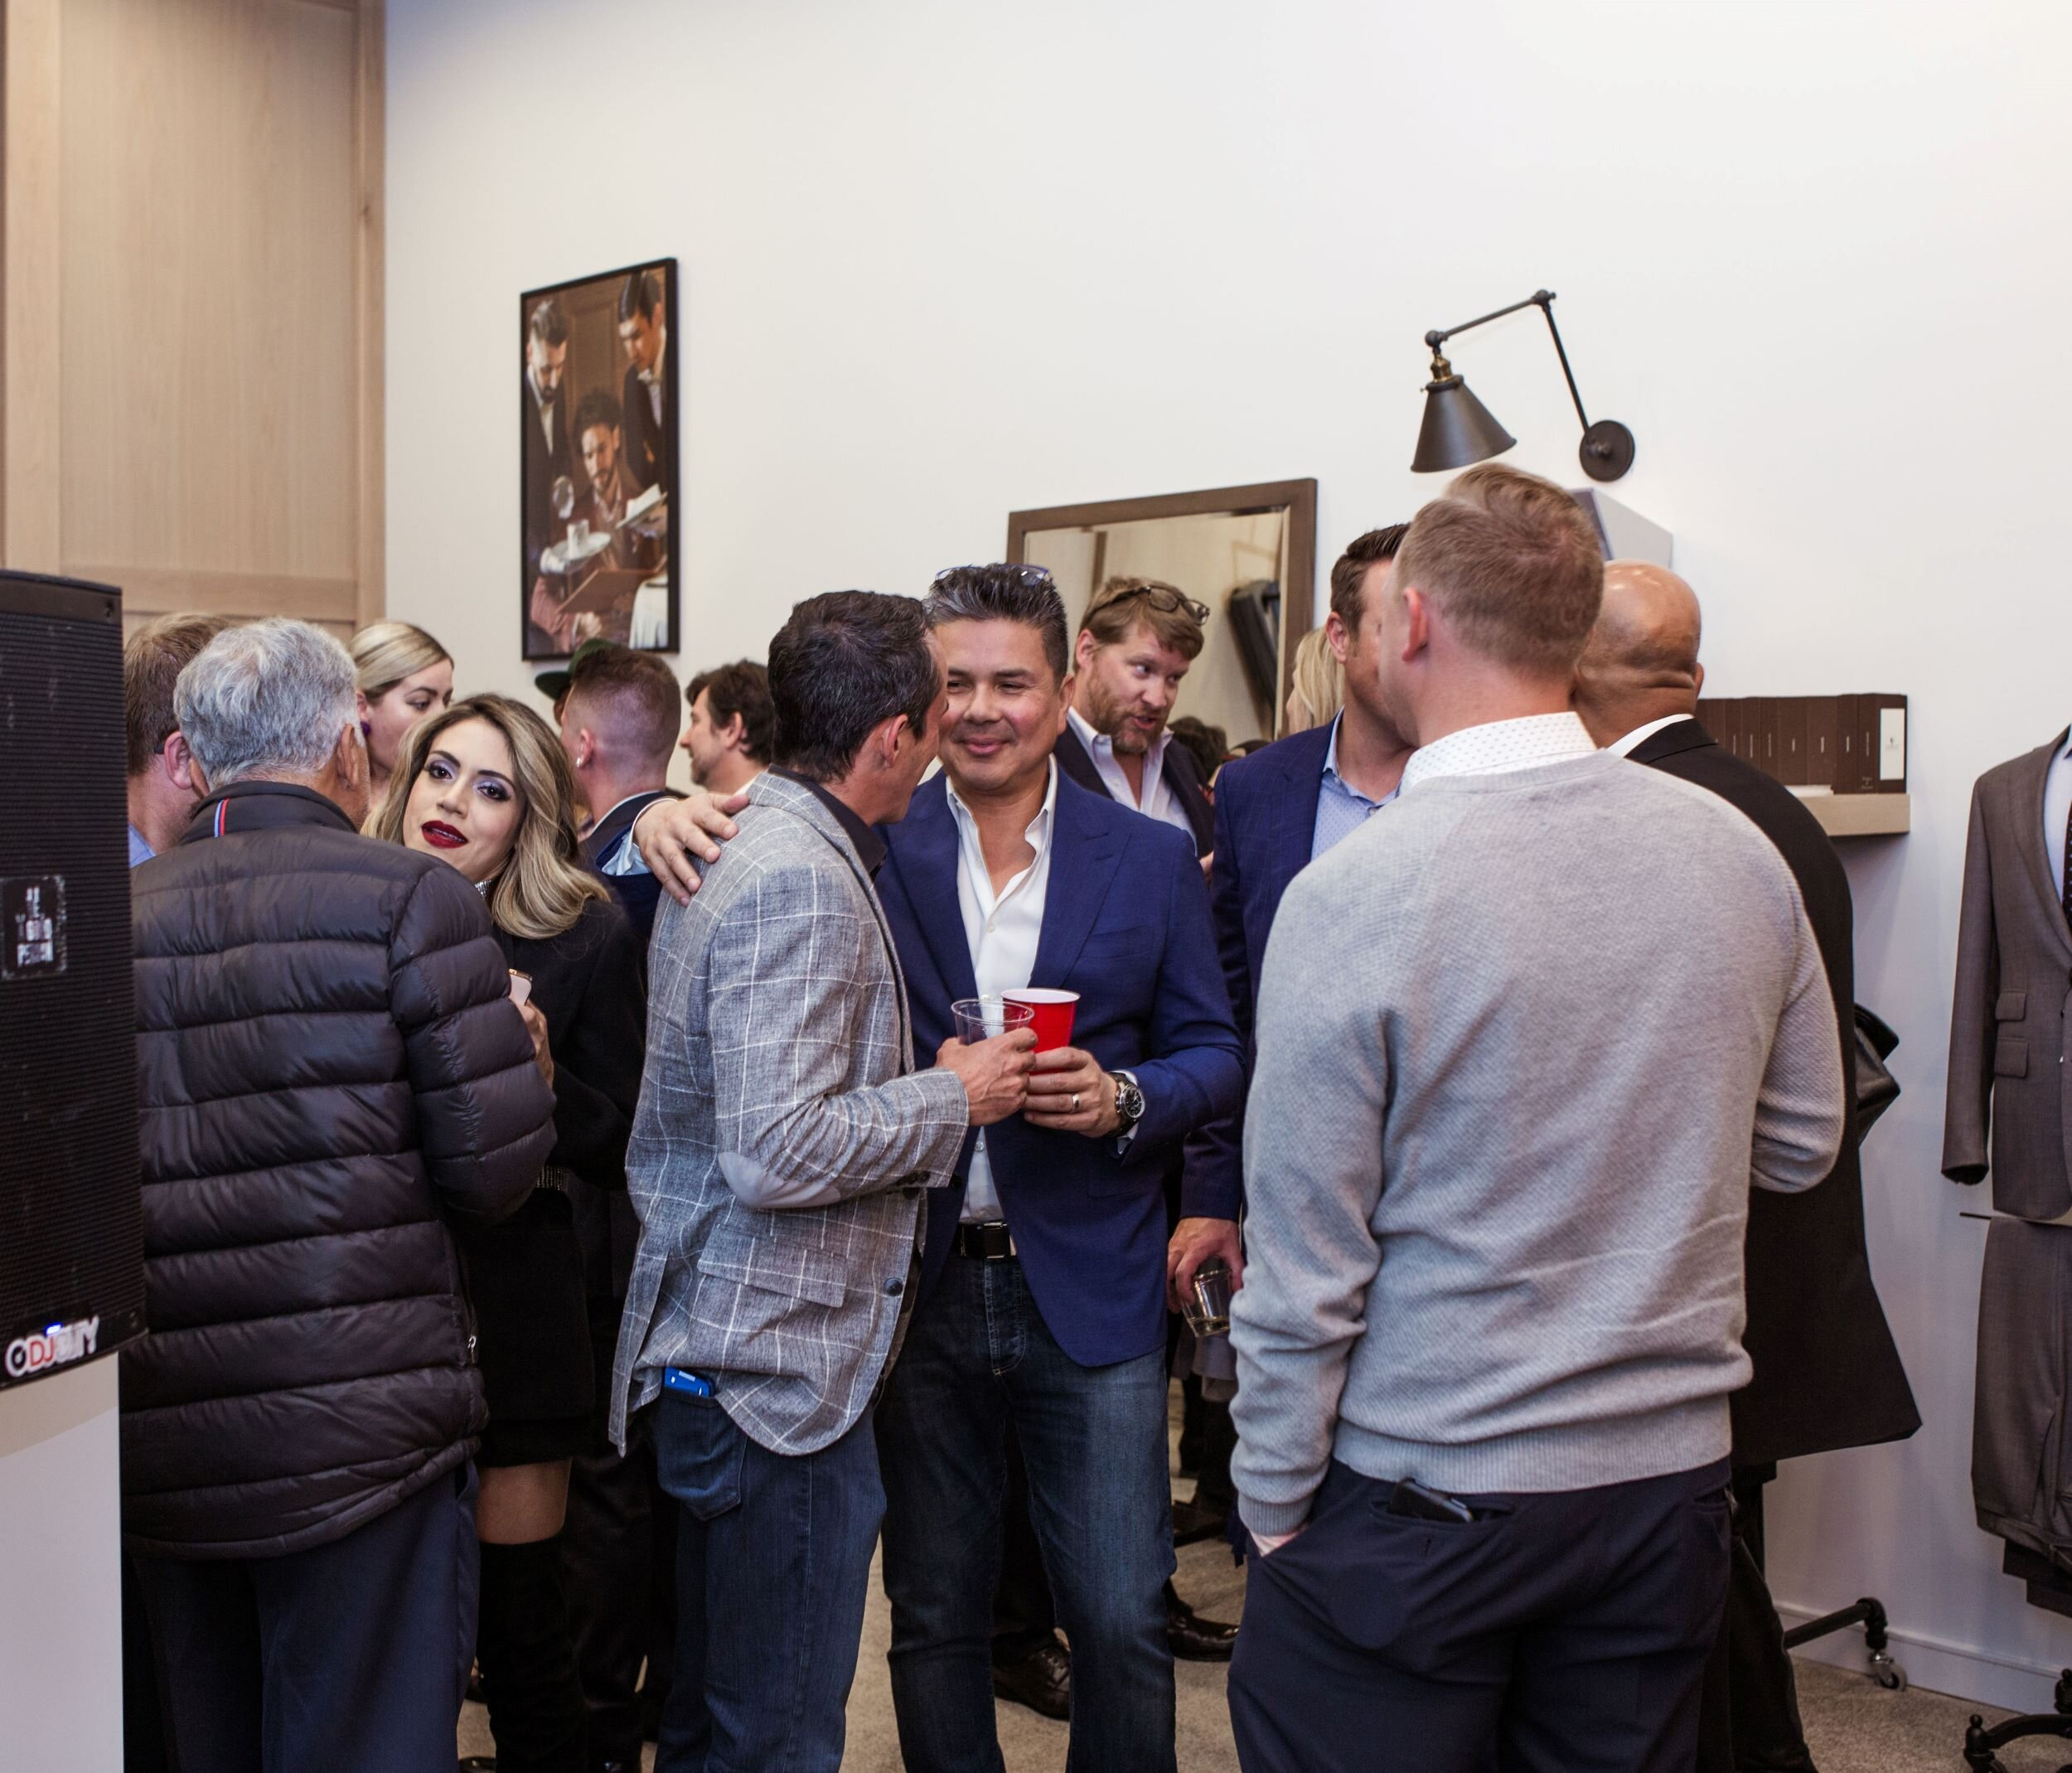 Cherry Creek Fashion and Icon Suit present The Men's Issue Party